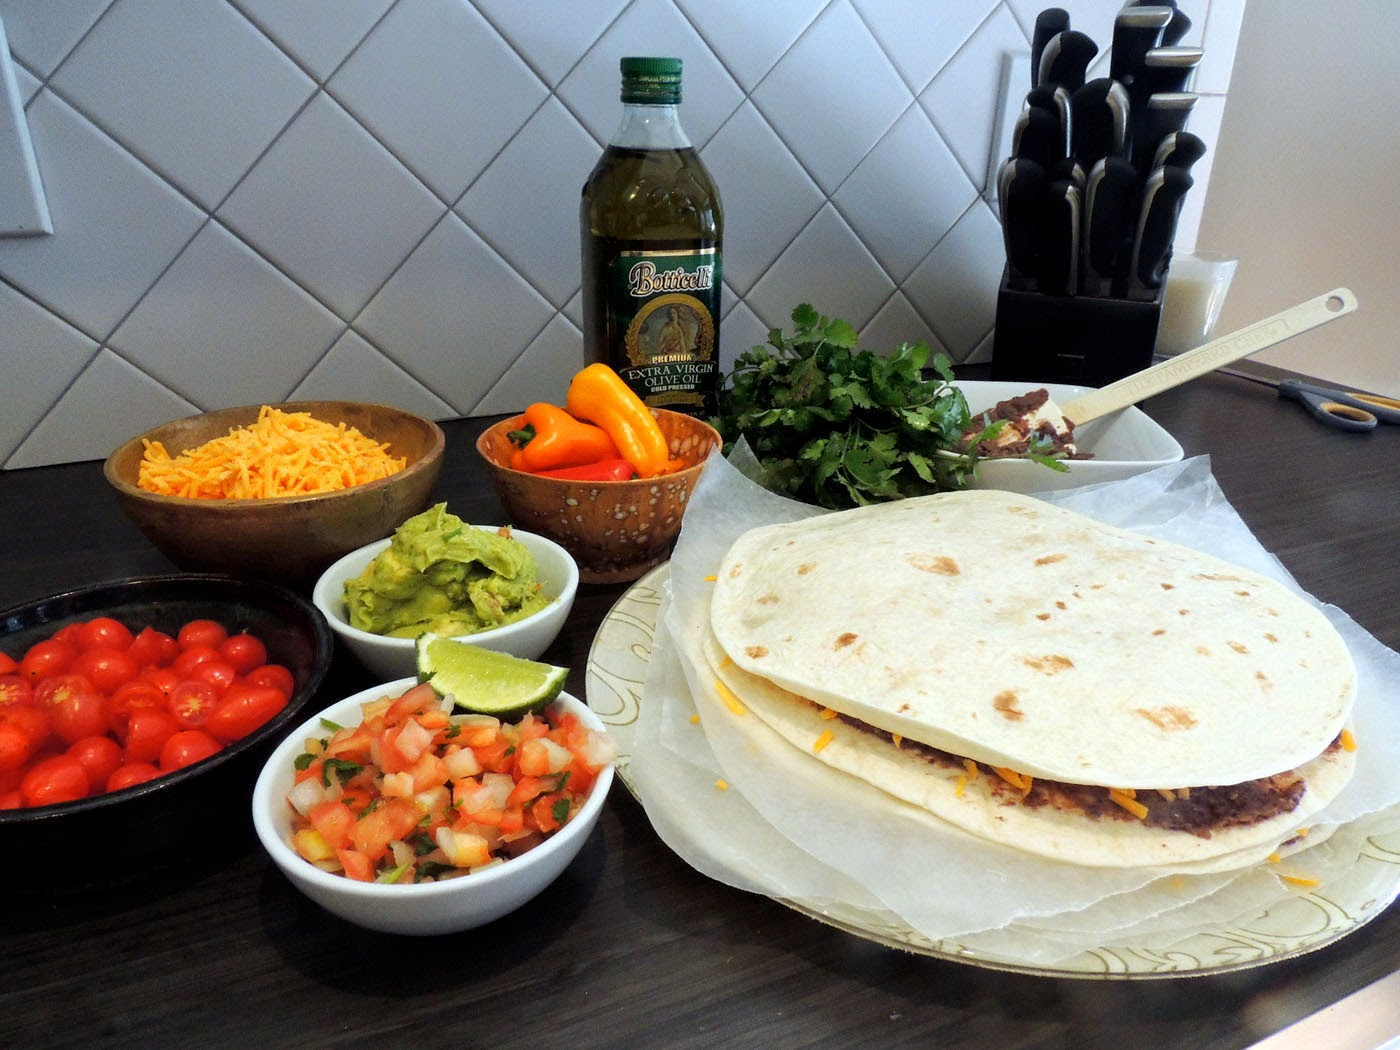 Grilled quesadillas